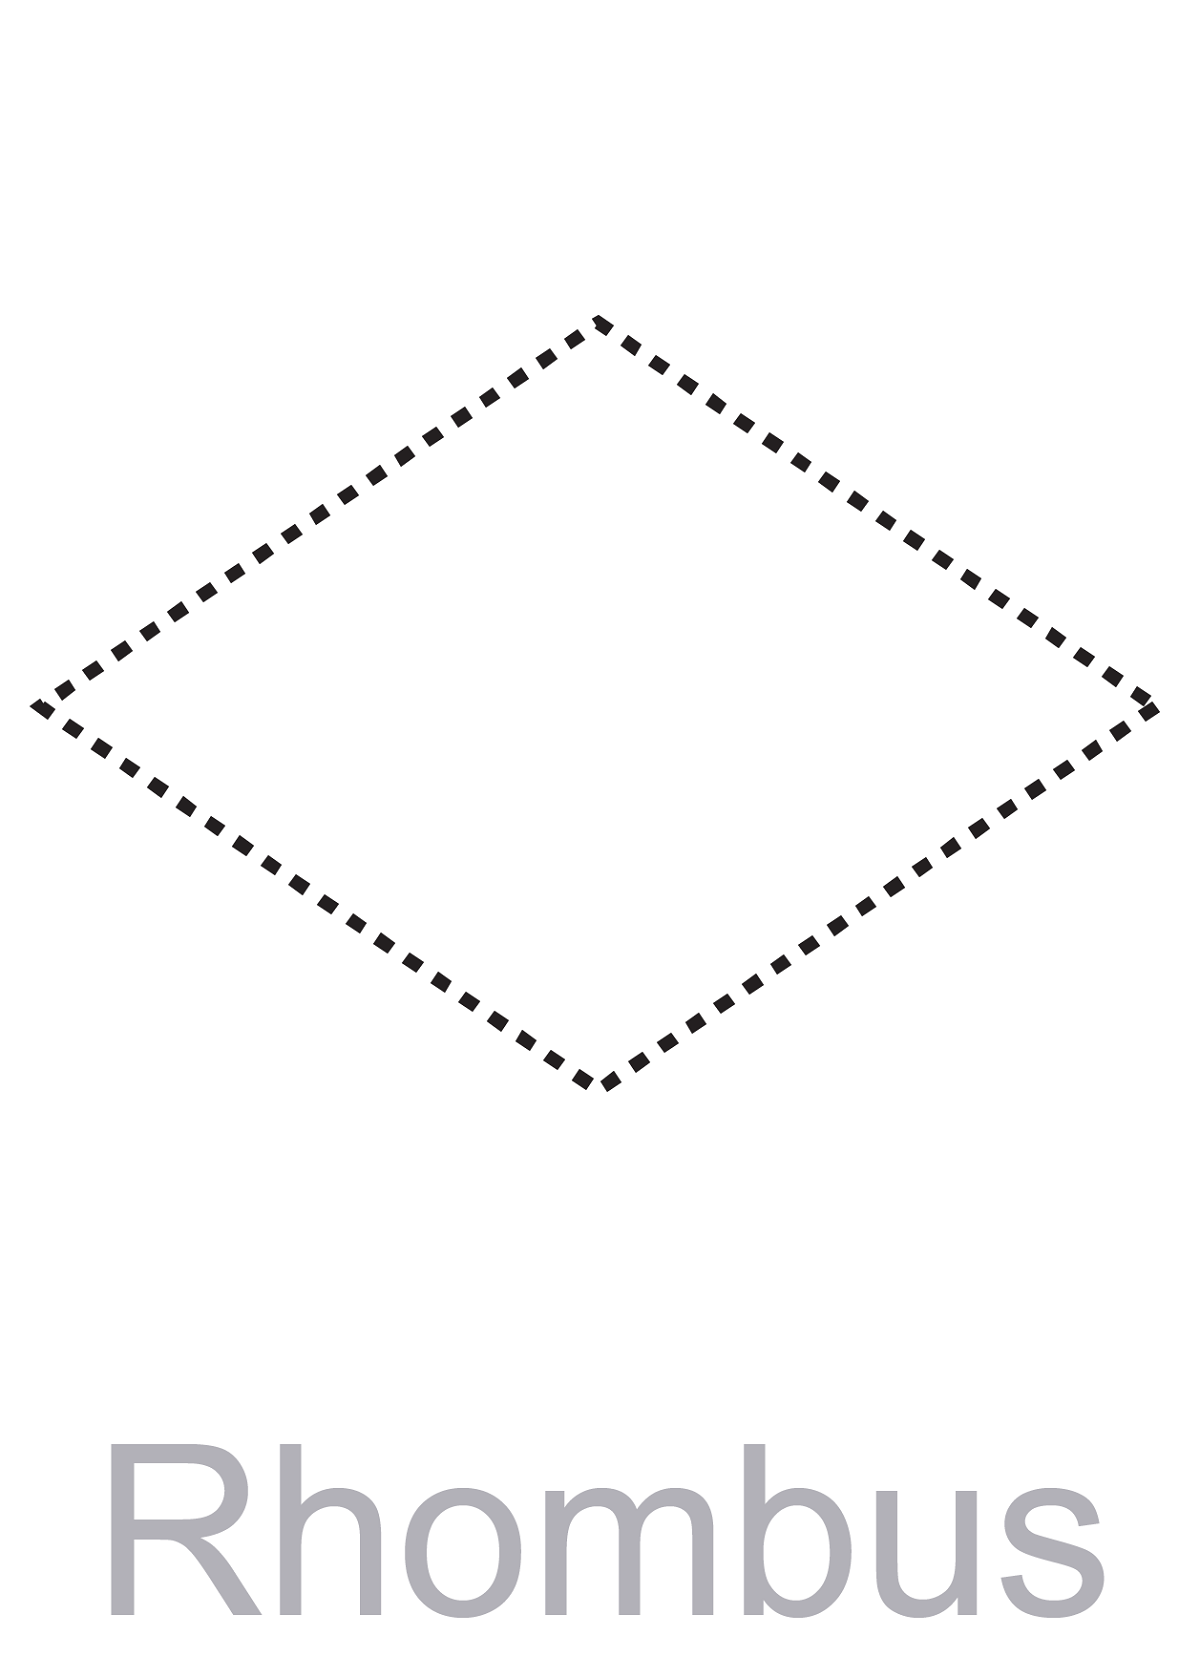 pictures of rhombus shapes traceable